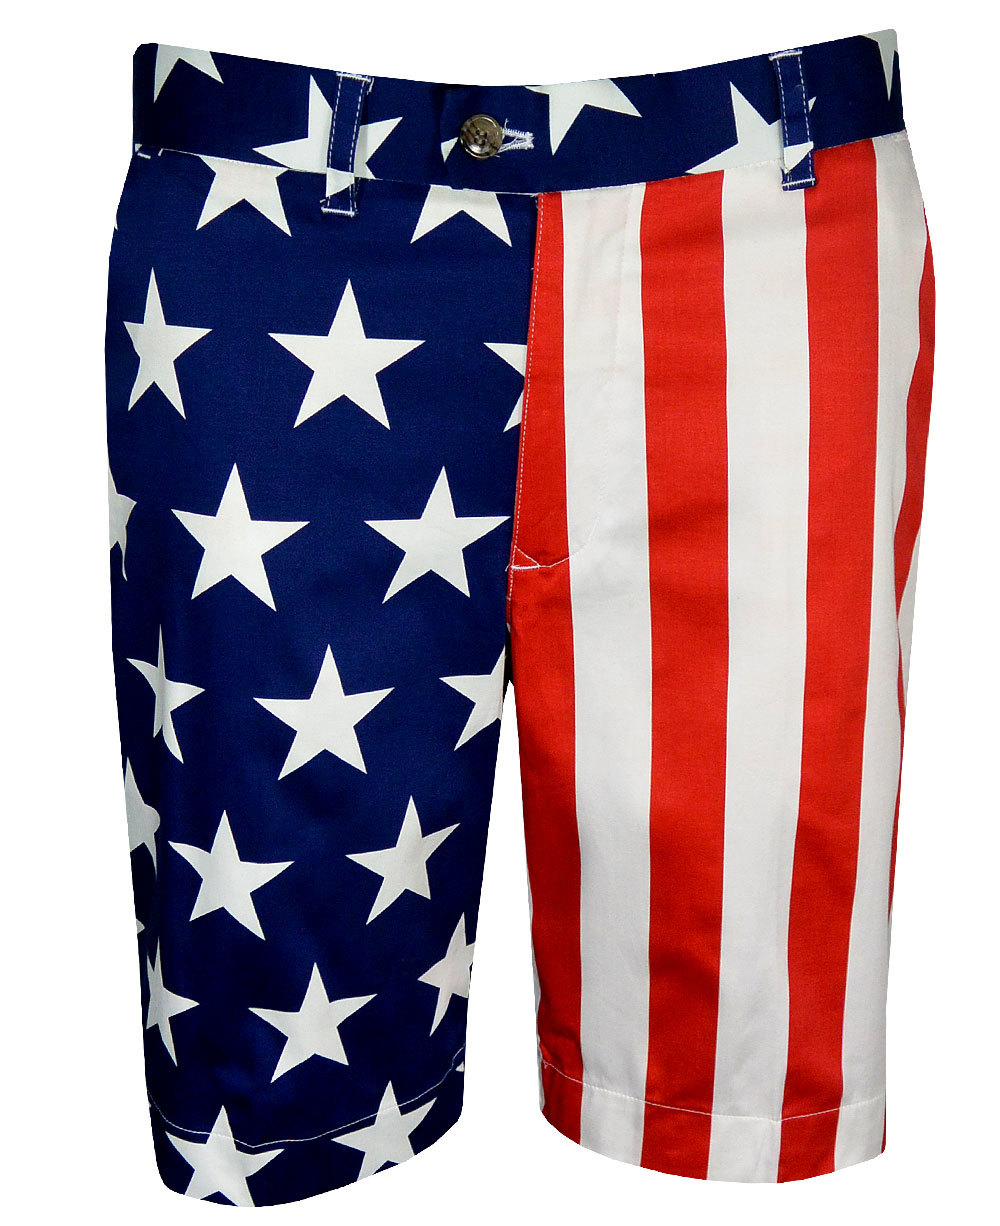 Loudmouth Golf- Stars & Stripes StretchTech Fabric Shorts